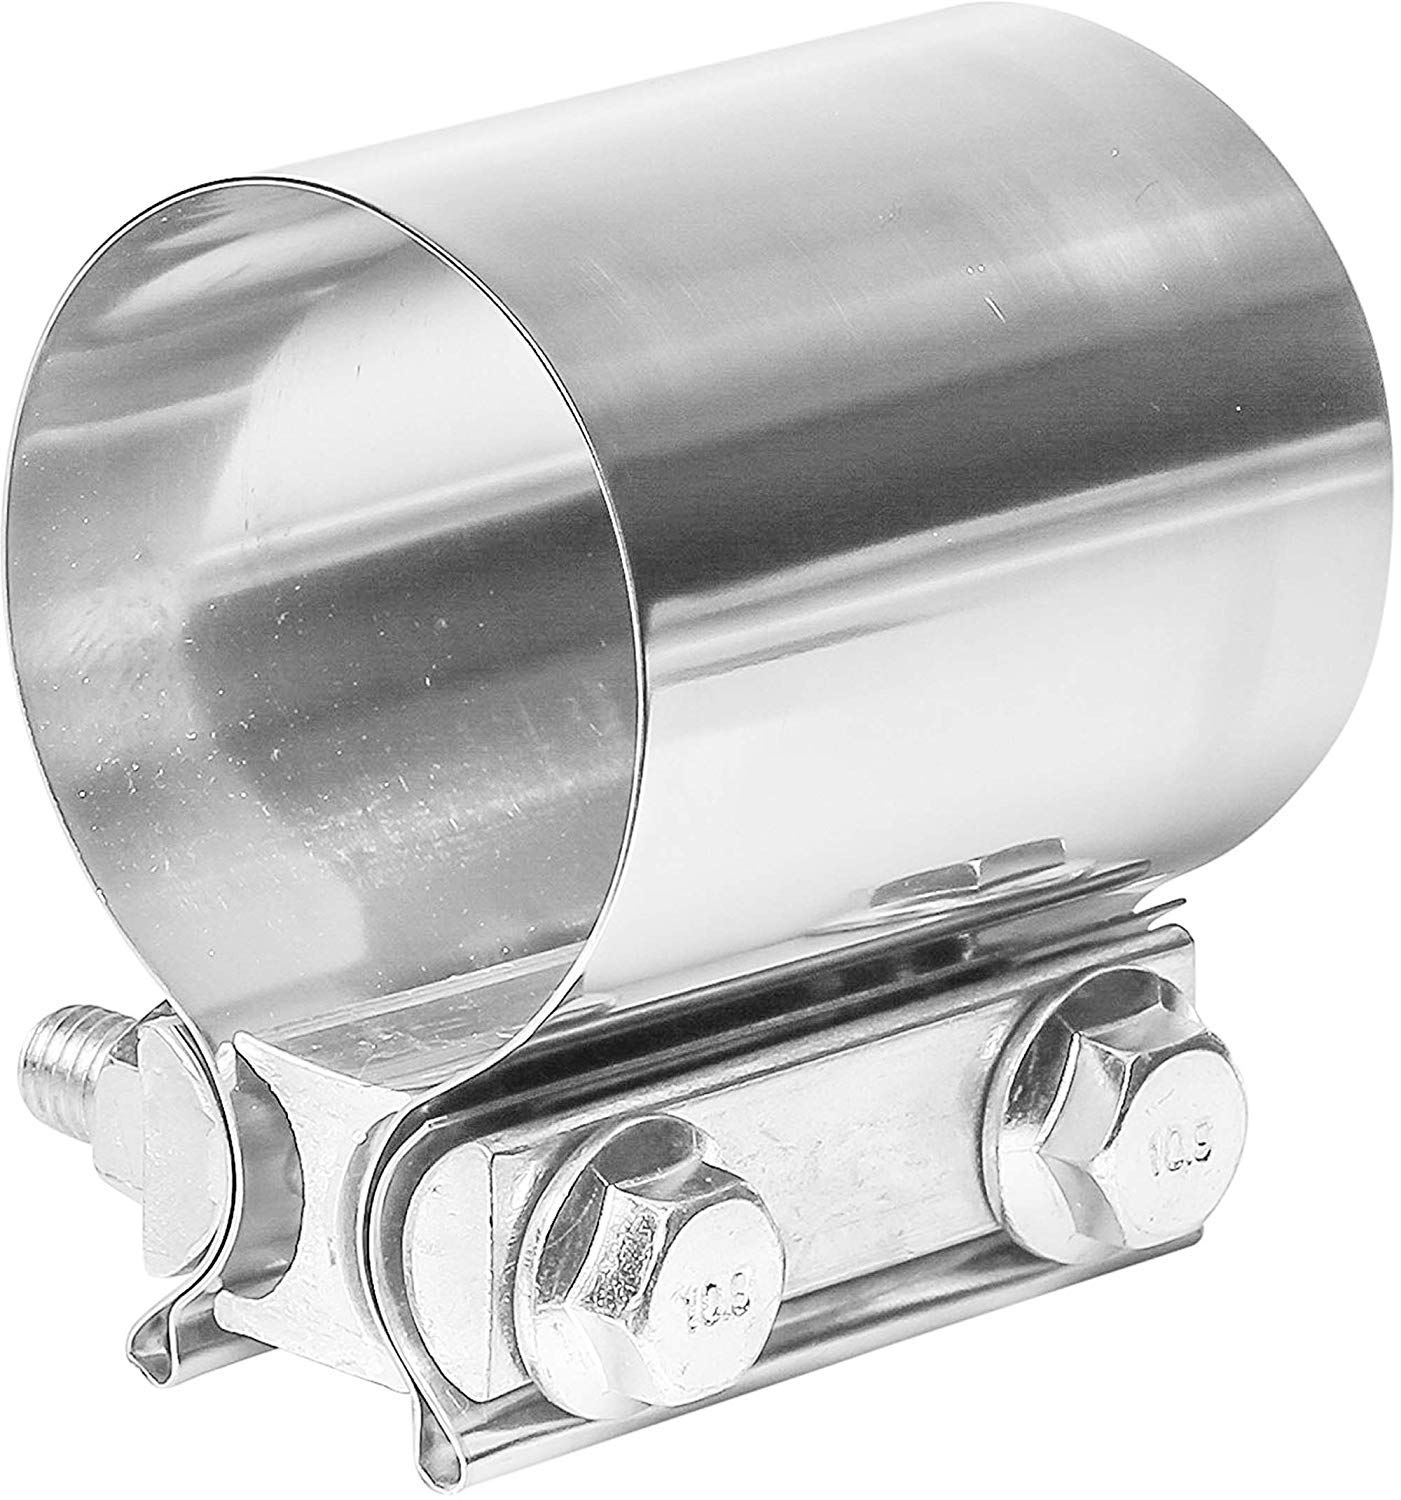 TOTALFLOW TF-JB62 304 Stainless Steel Butt Joint Exhaust Muffler Clamp Band 4'